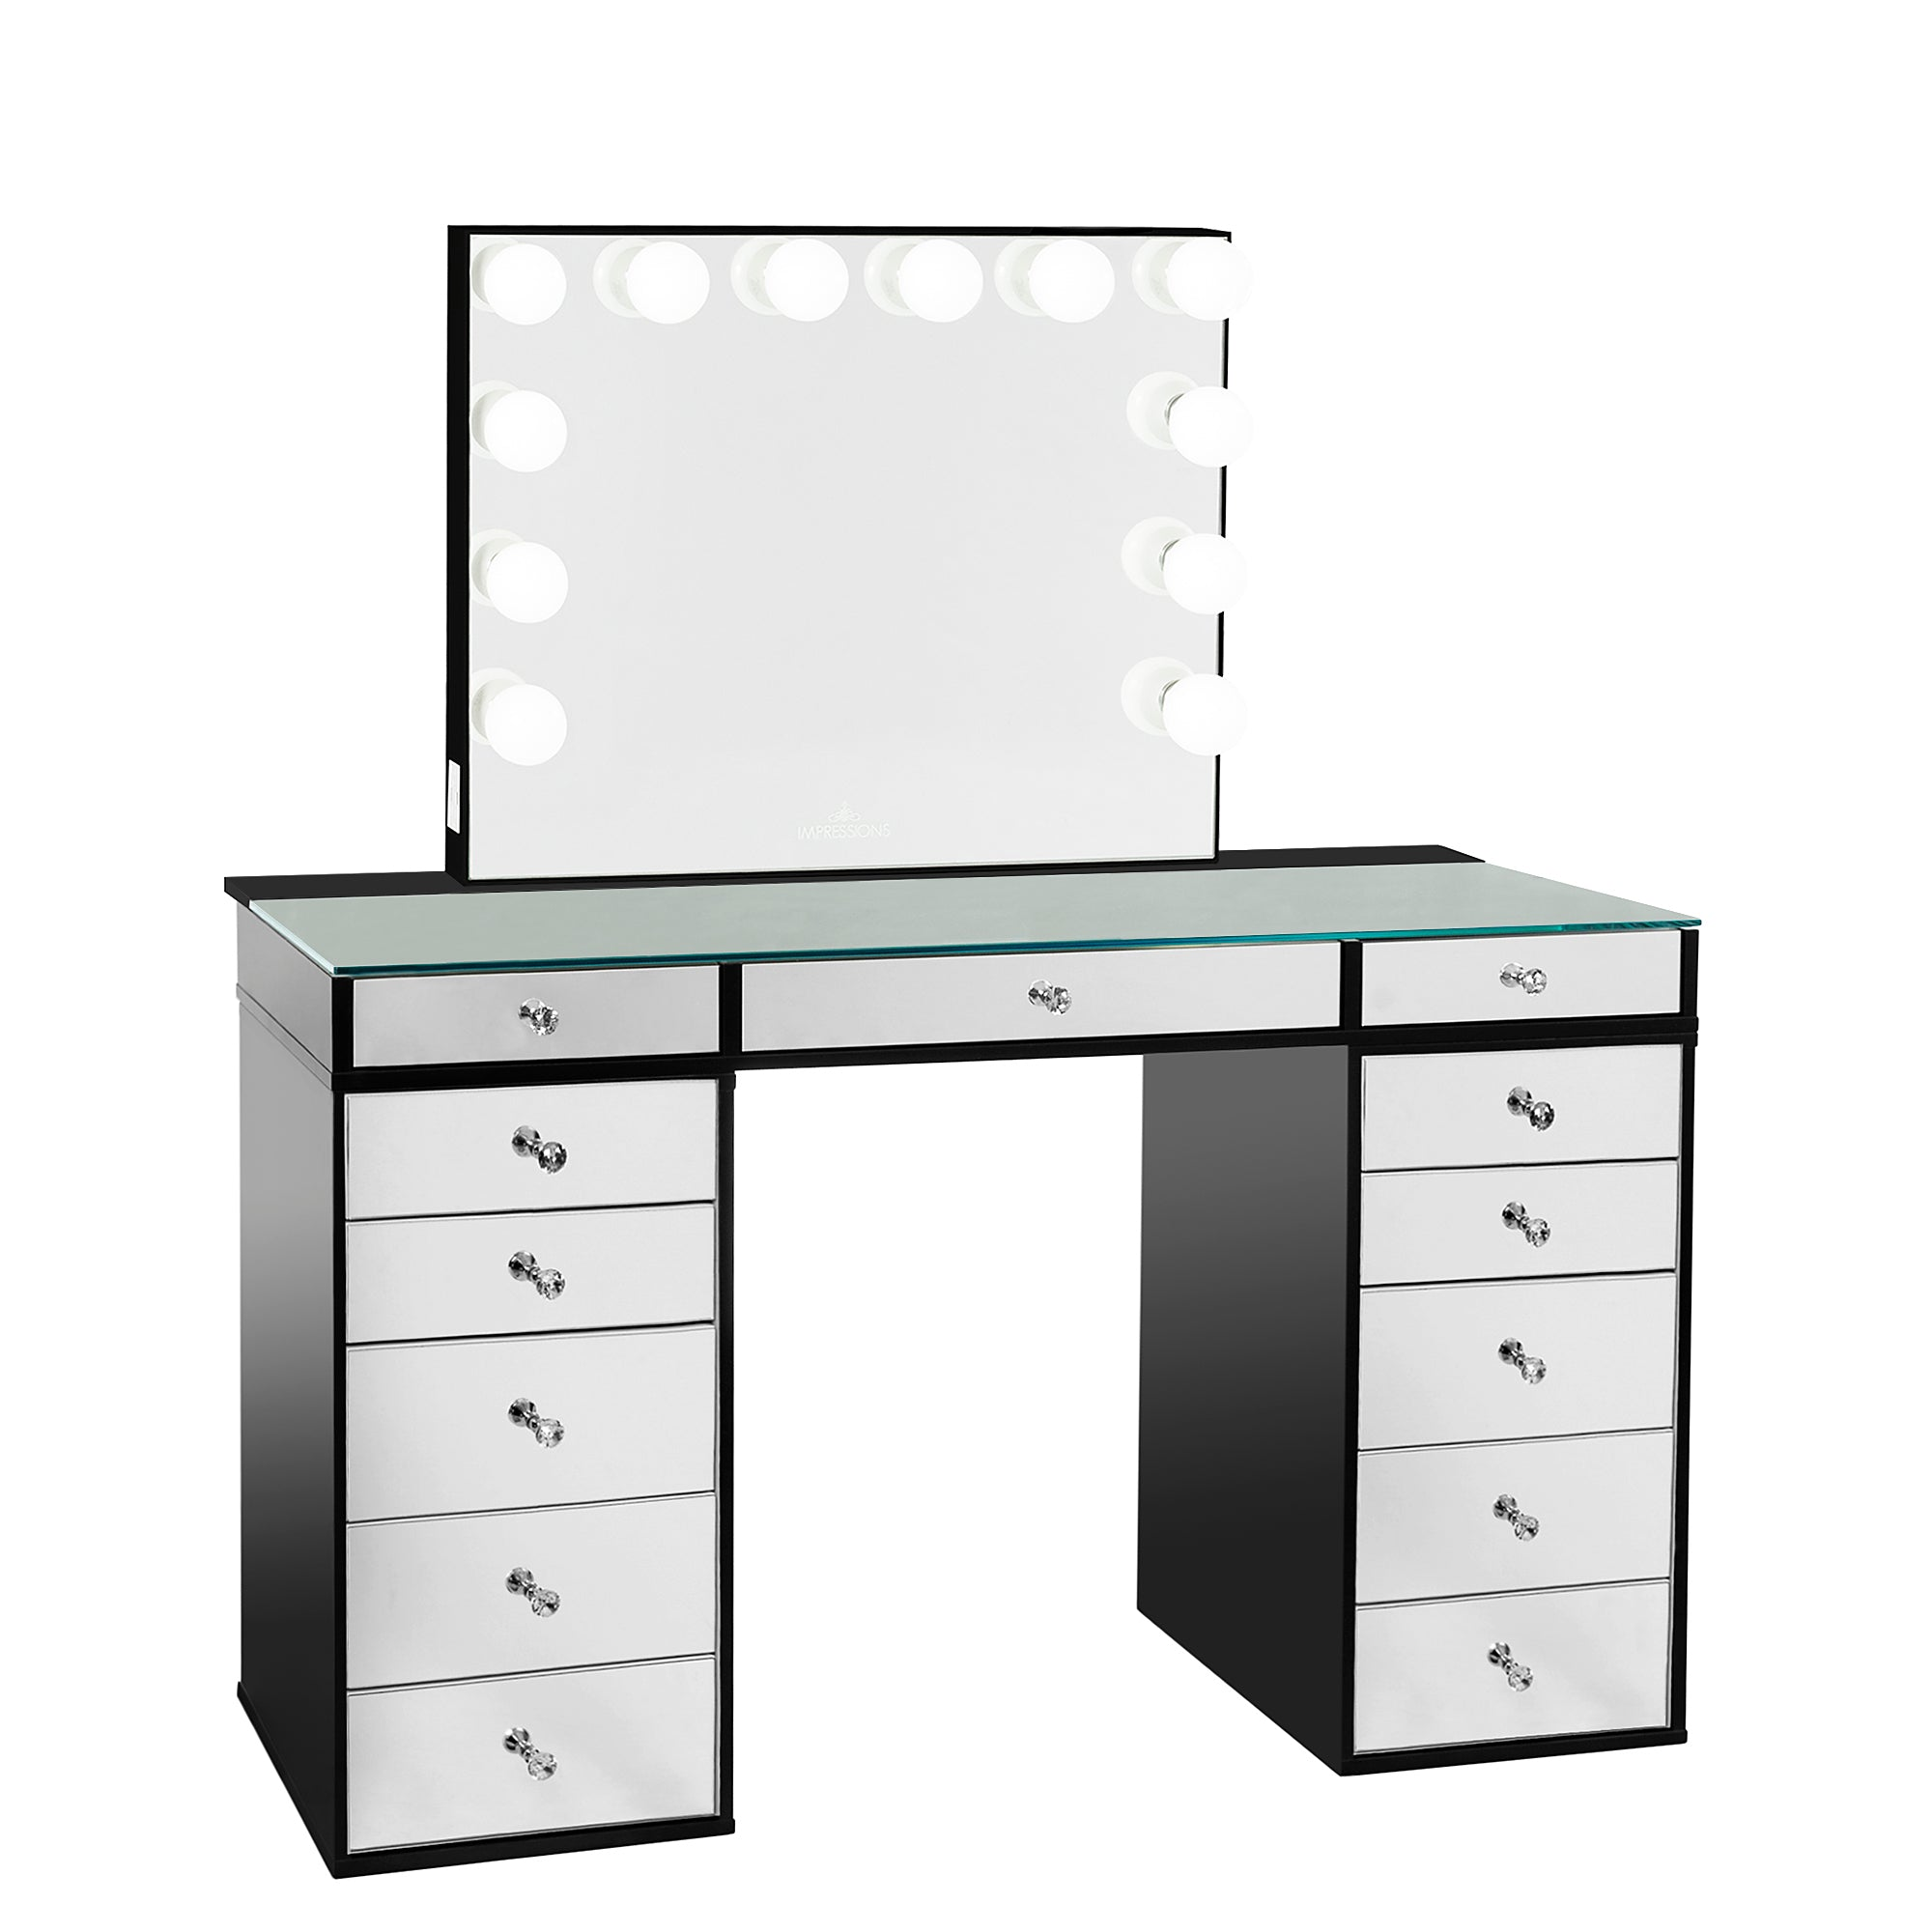 Slaystation Plus 2 0 Mirrored Tabletop Vanity Mirror 5 Drawer Units Bundle Impressions Vanity Co